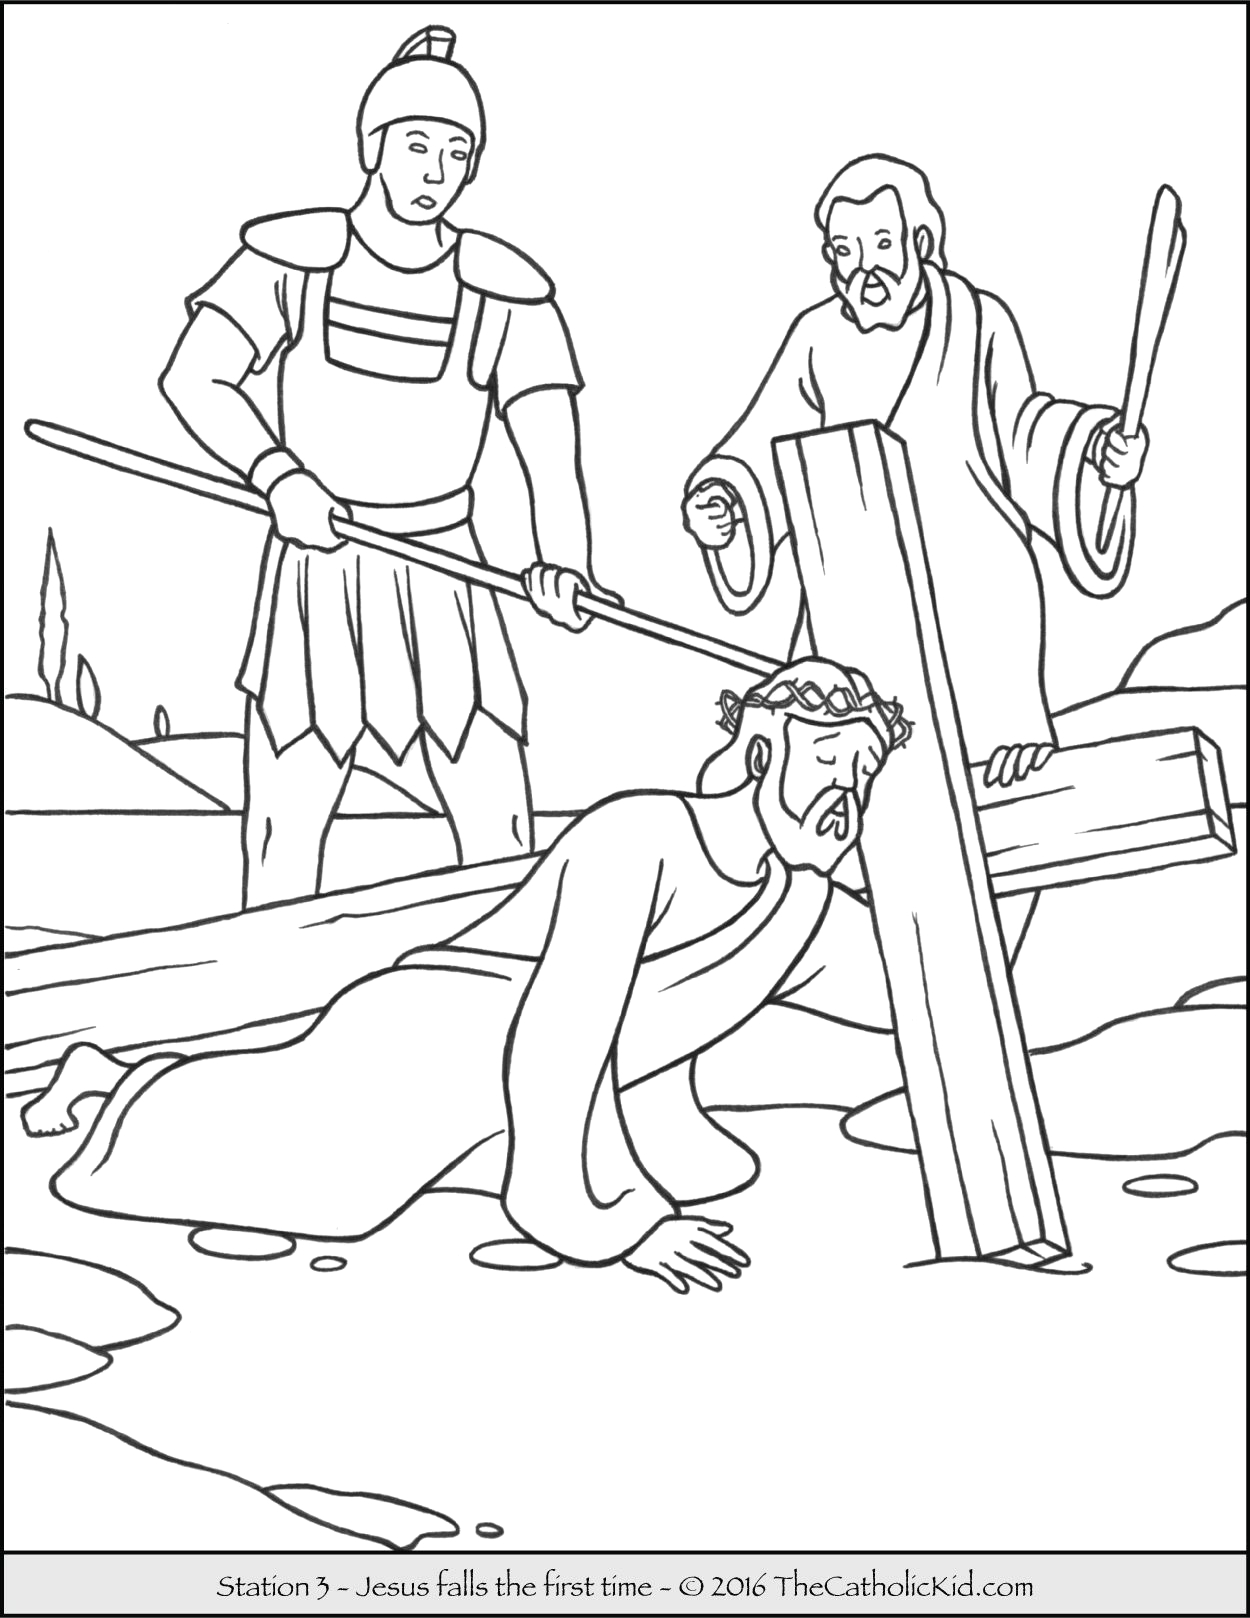 Stations Of the Cross Coloring Pages Free Download Stations the Cross Coloring Page Coloring Home